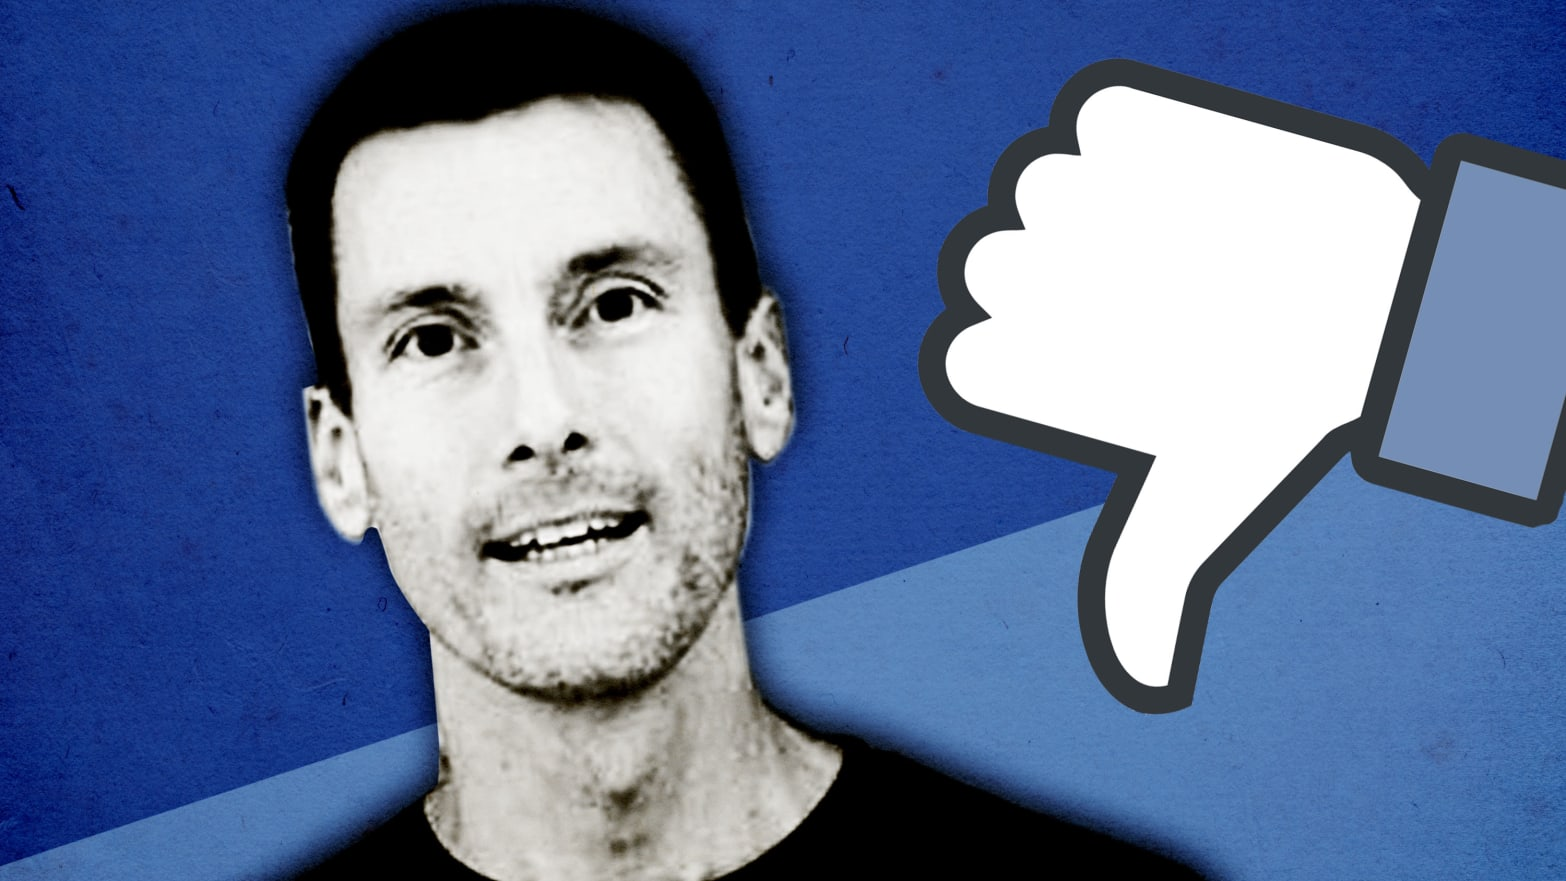 Facebook removes ads from a prominent anti-vaxxer